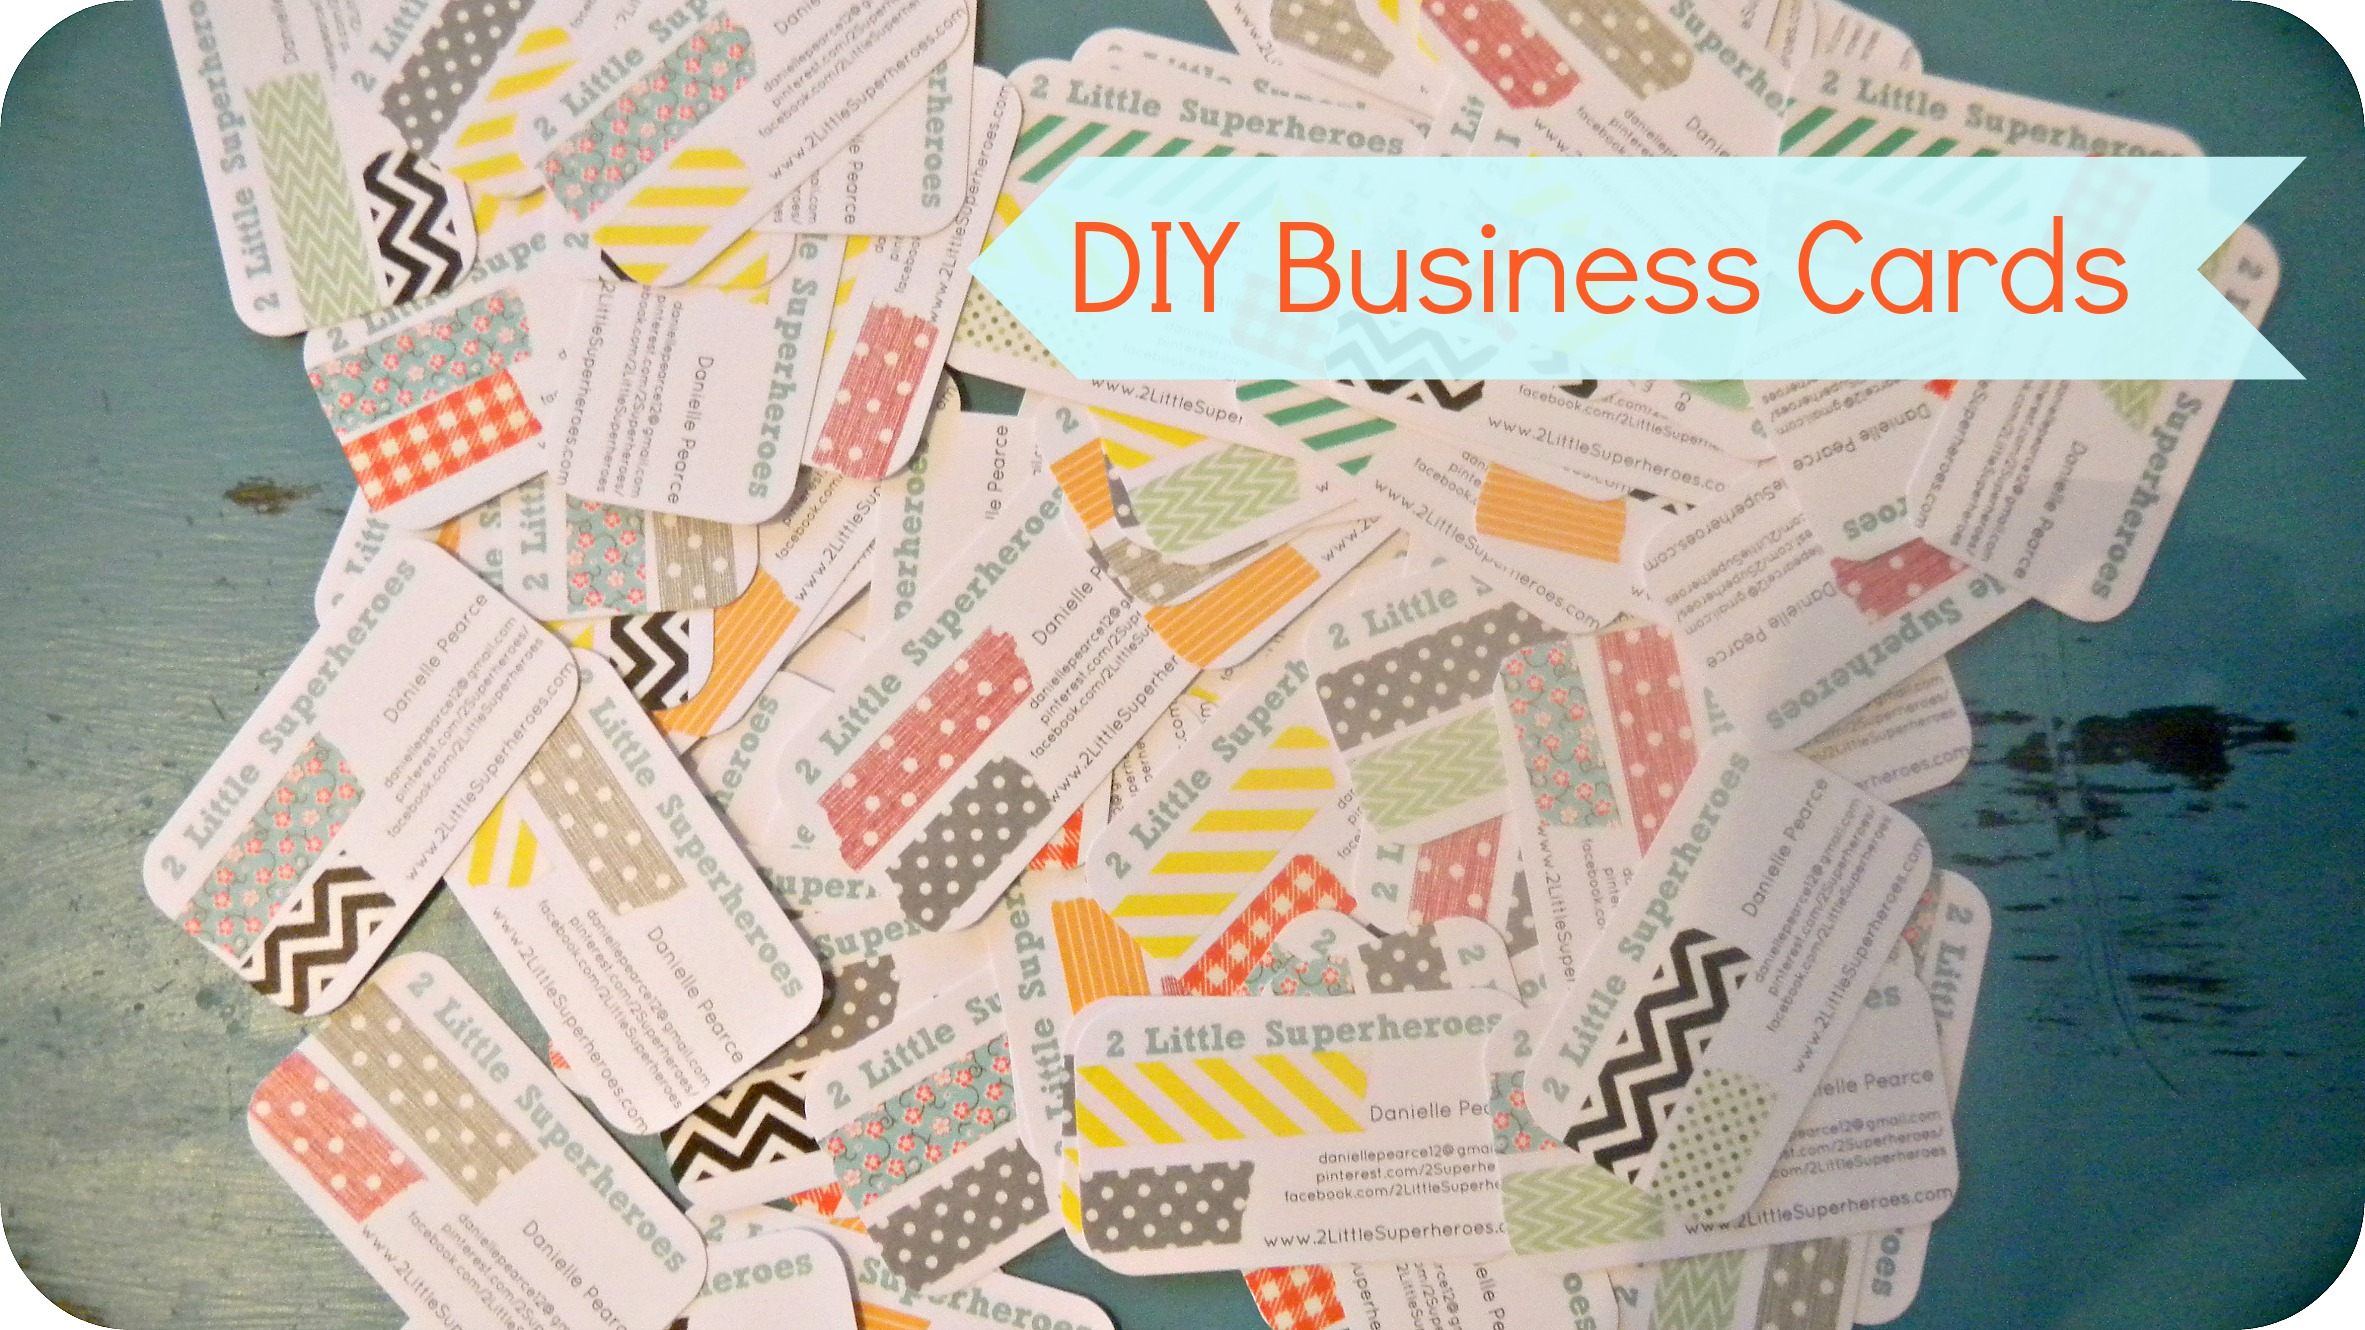 diybusinesscards Blog Business Cards